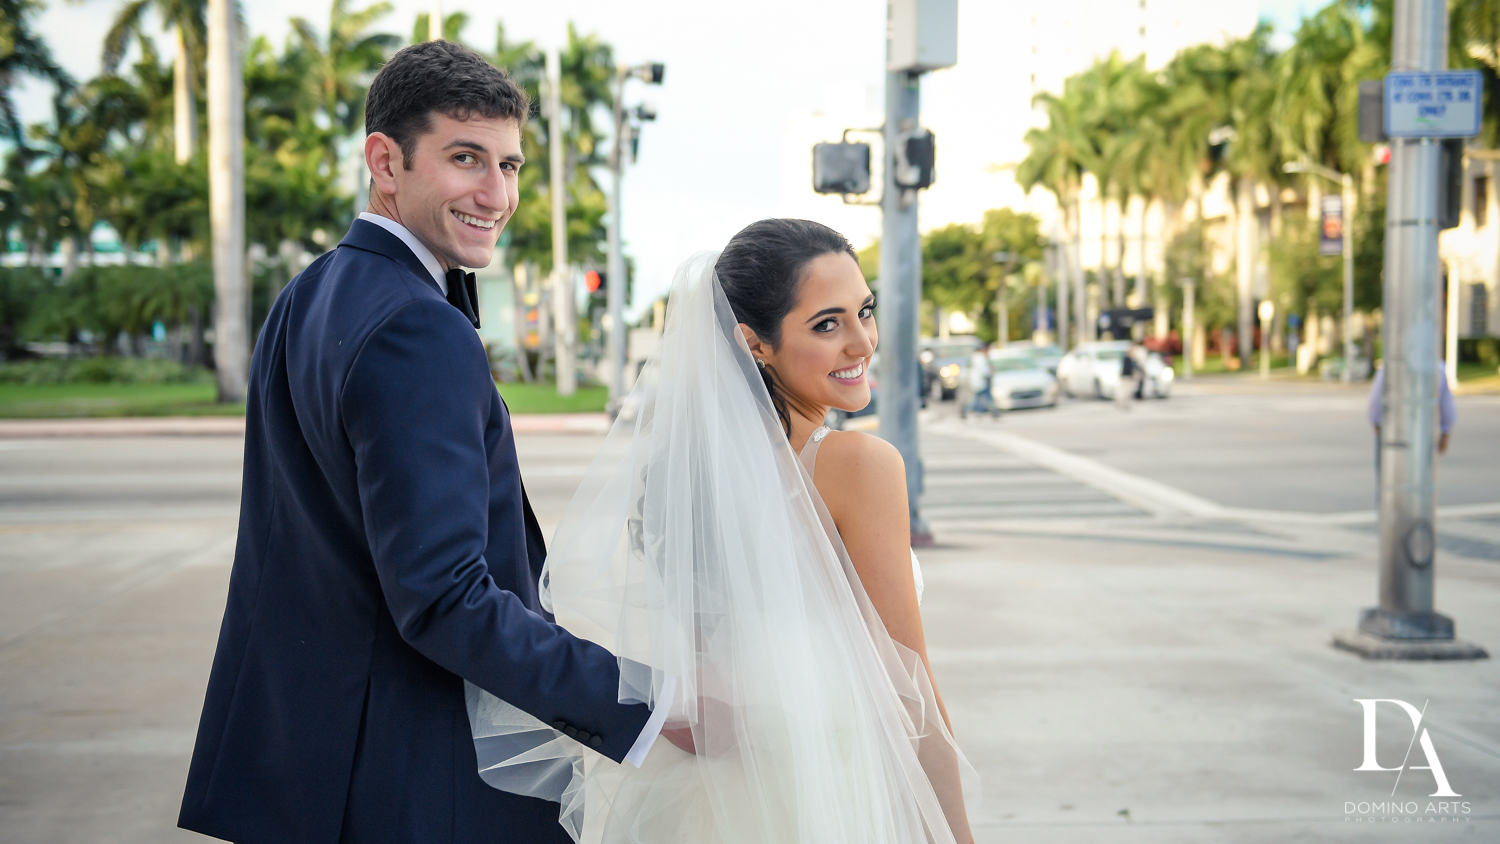 natural bride and groom pics at Classic Miami Beach Wedding at Temple Emanu-El and Emanuel Luxury Venue by Domino Arts Photography